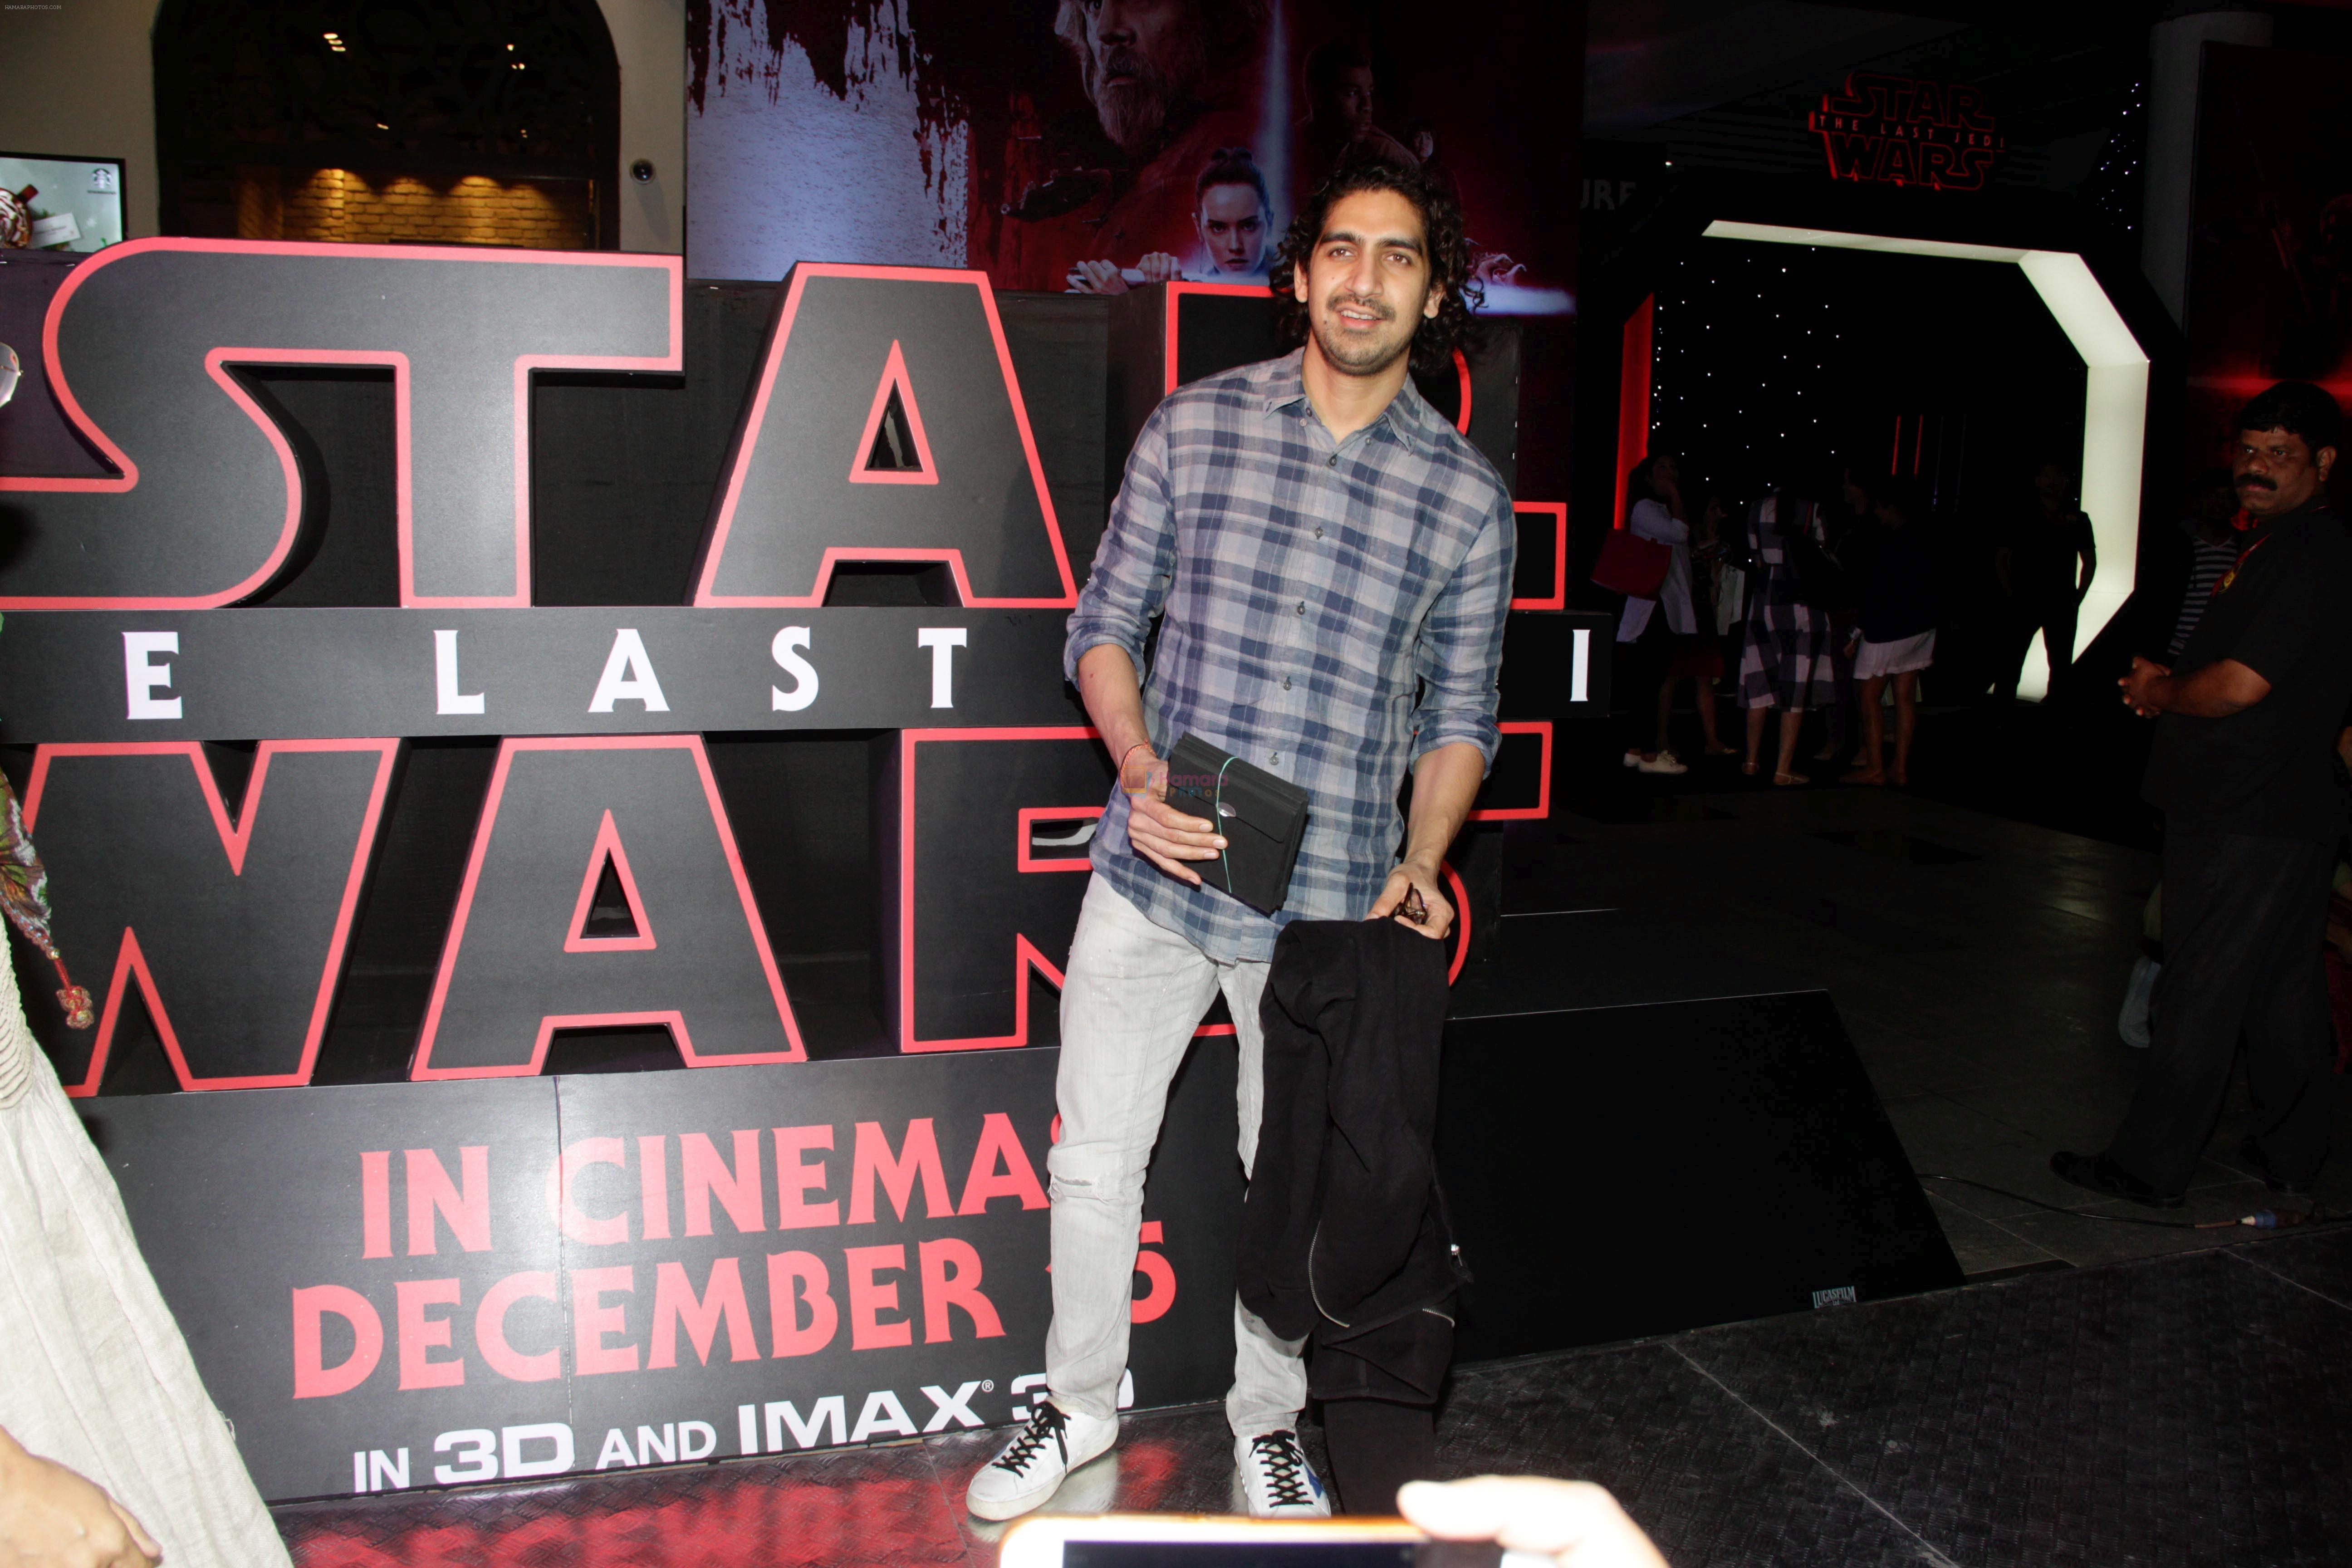 Ayan Mukherjee at the Red Carpet Premiere Of 2017's Most Awaited Hollywood Film Disney Star War on 13th Dec 2017